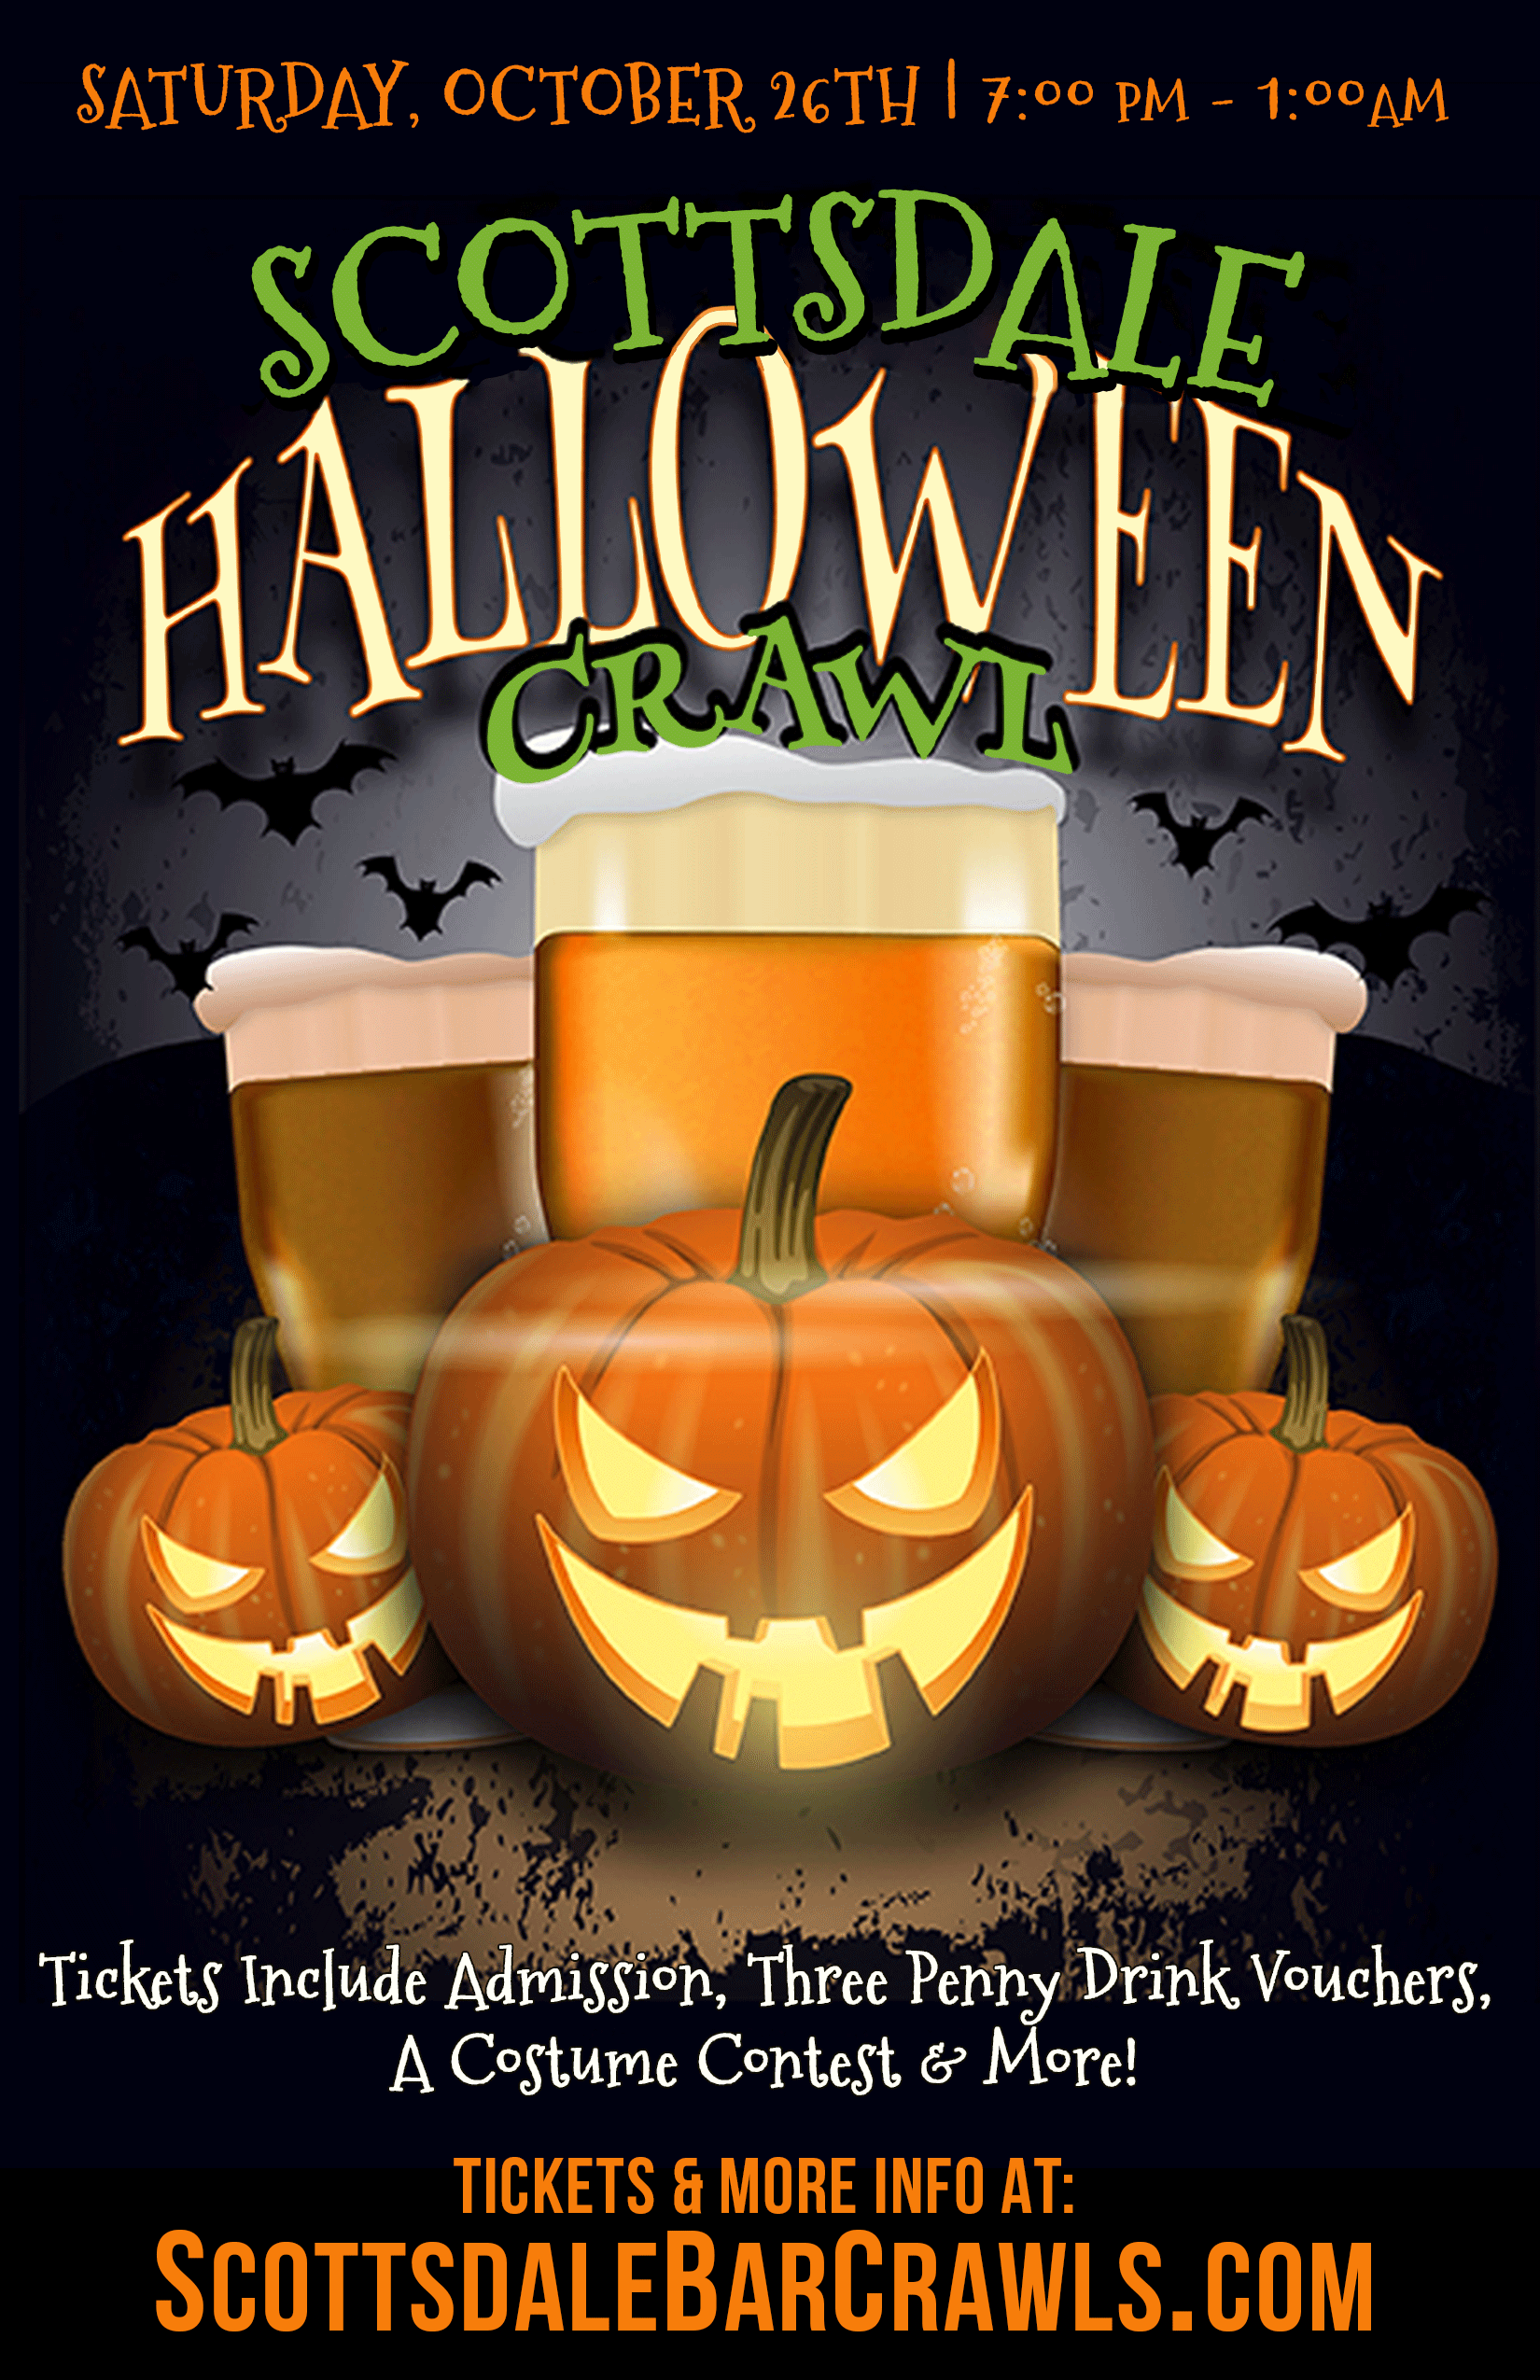 Scottsdale Halloween Night Bar Crawl - Tickets include Admission to All Bars, Three 1-penny ($.01) Drink Vouchers to Use on the Crawl, a Costume Contest & More!